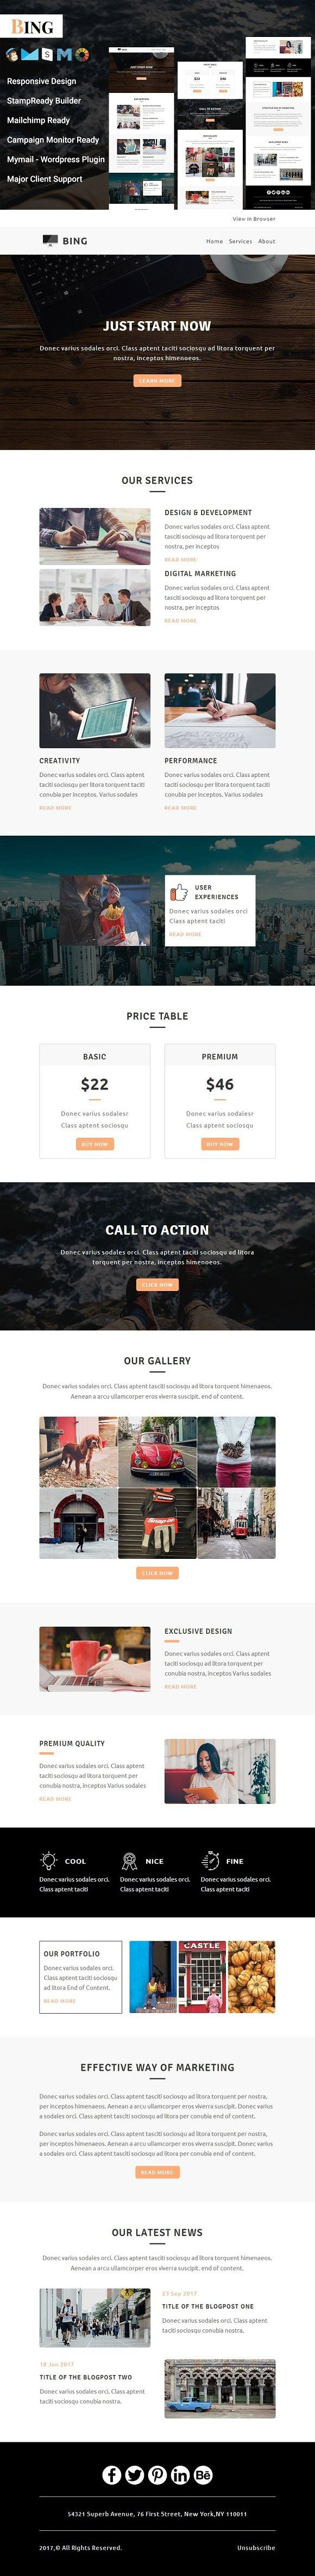 Bing - Responsive Email Template. Email Templates